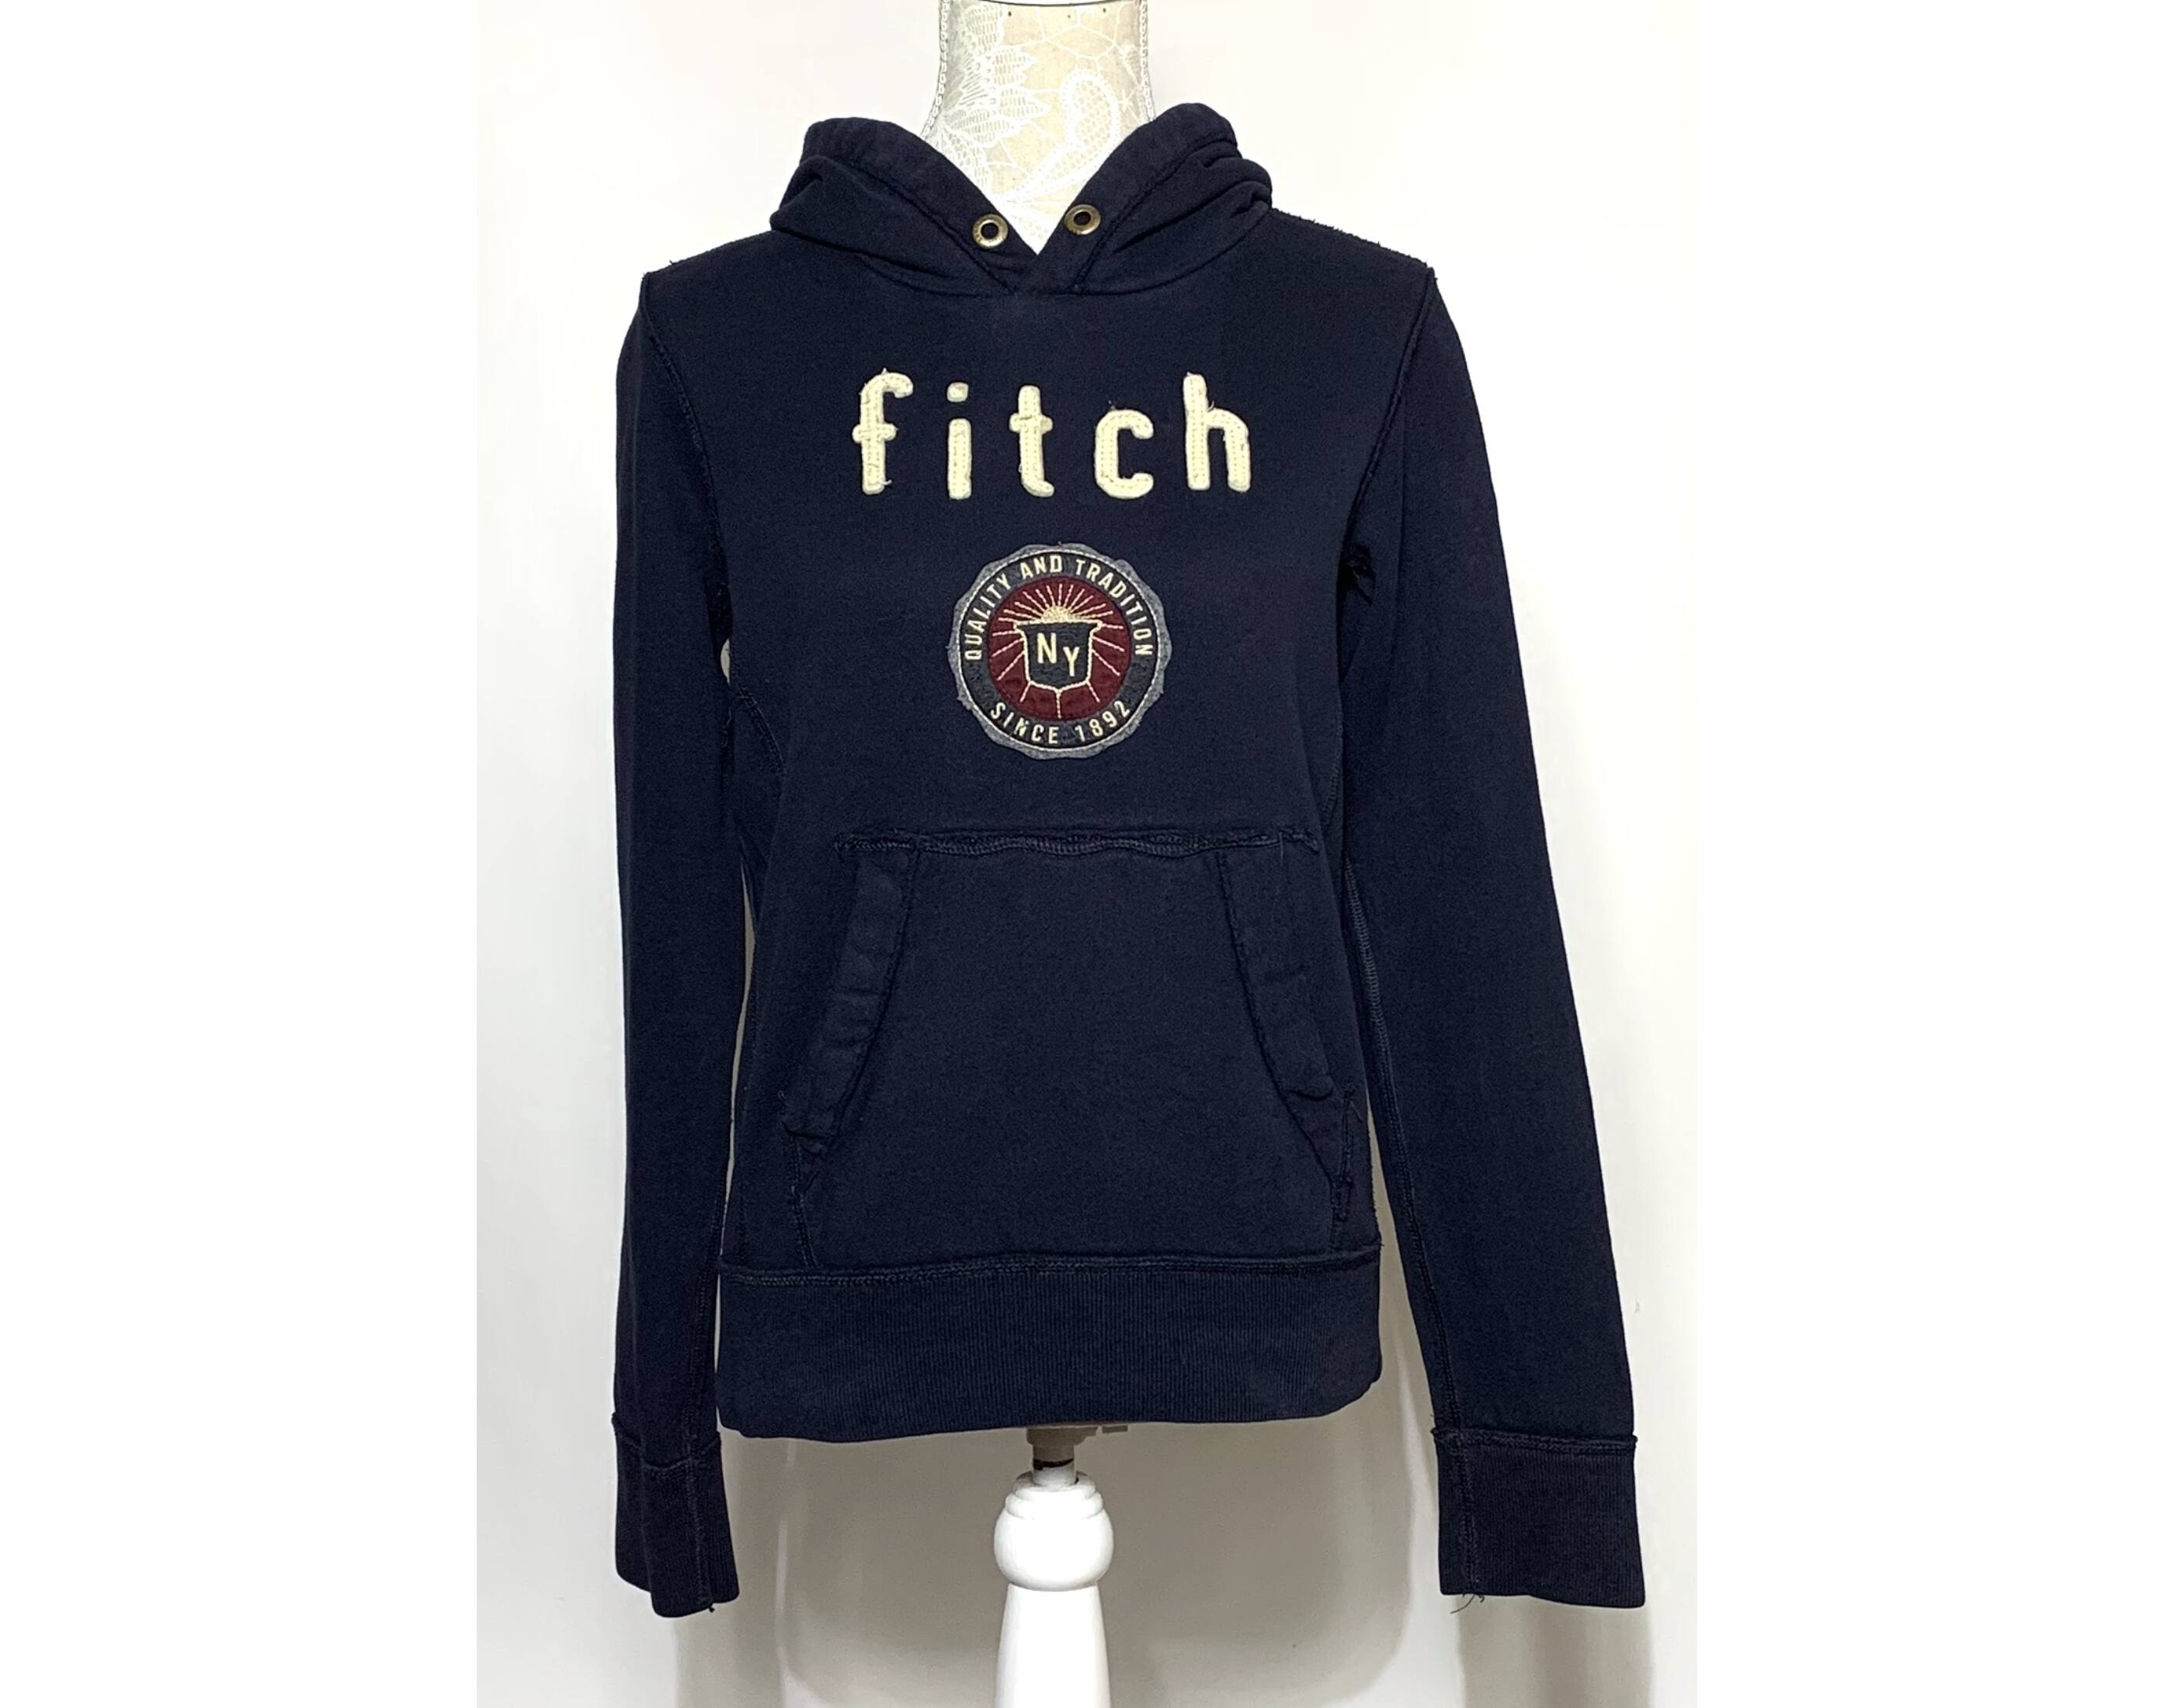 Abercrombie and Fitch pulóver (L)